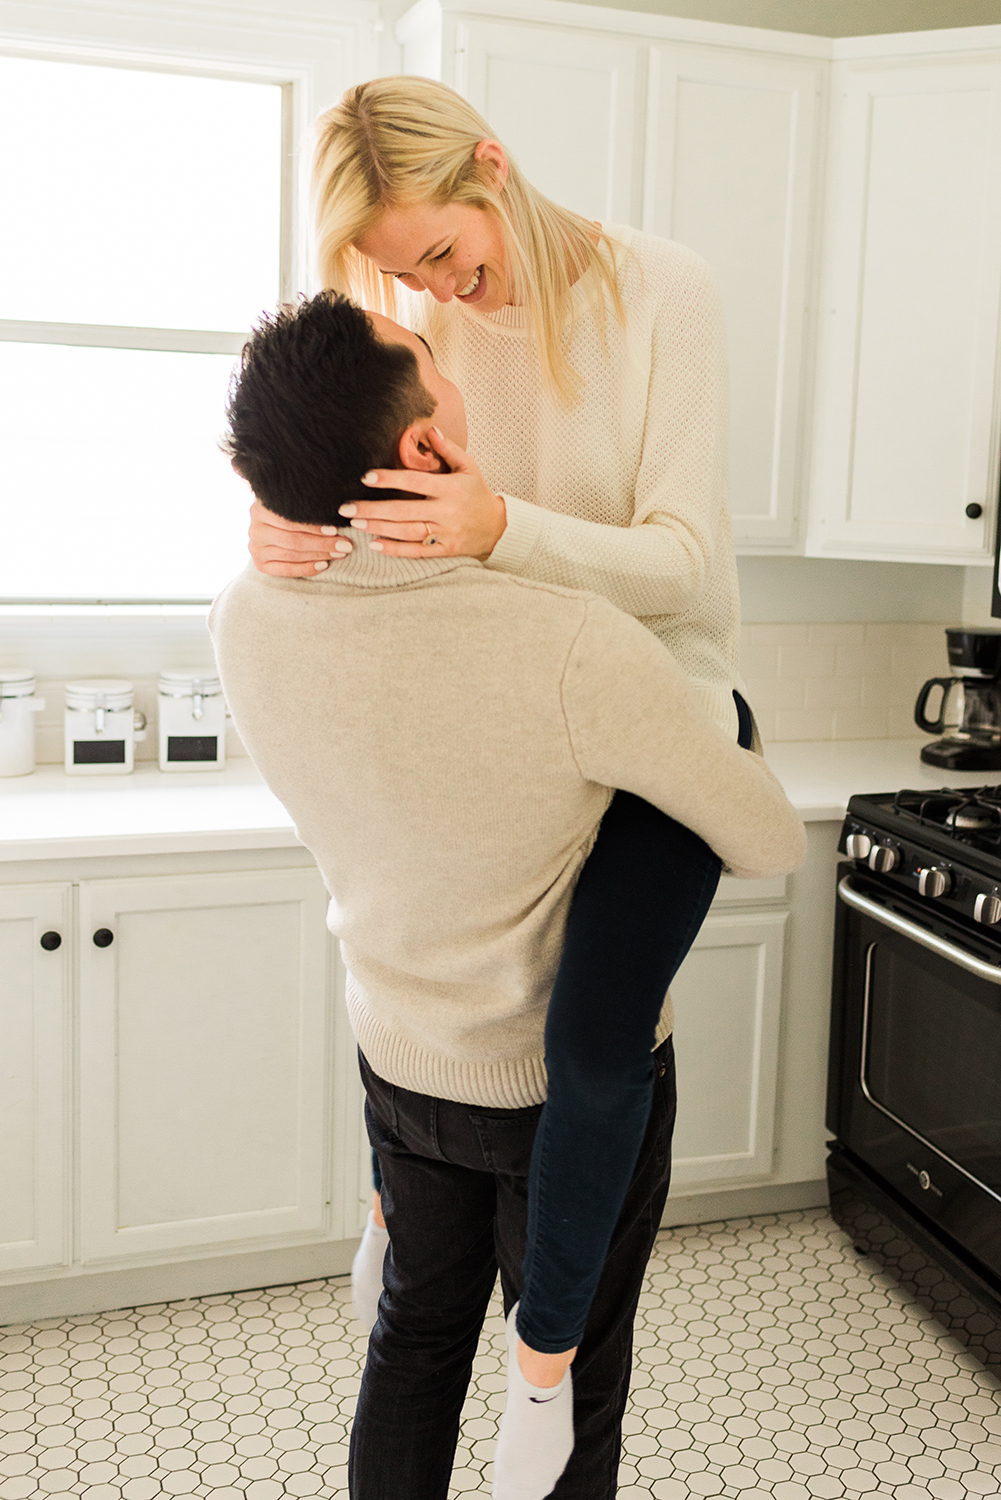 in-home-engagement-session-denver-engagement-photographer_49.jpg